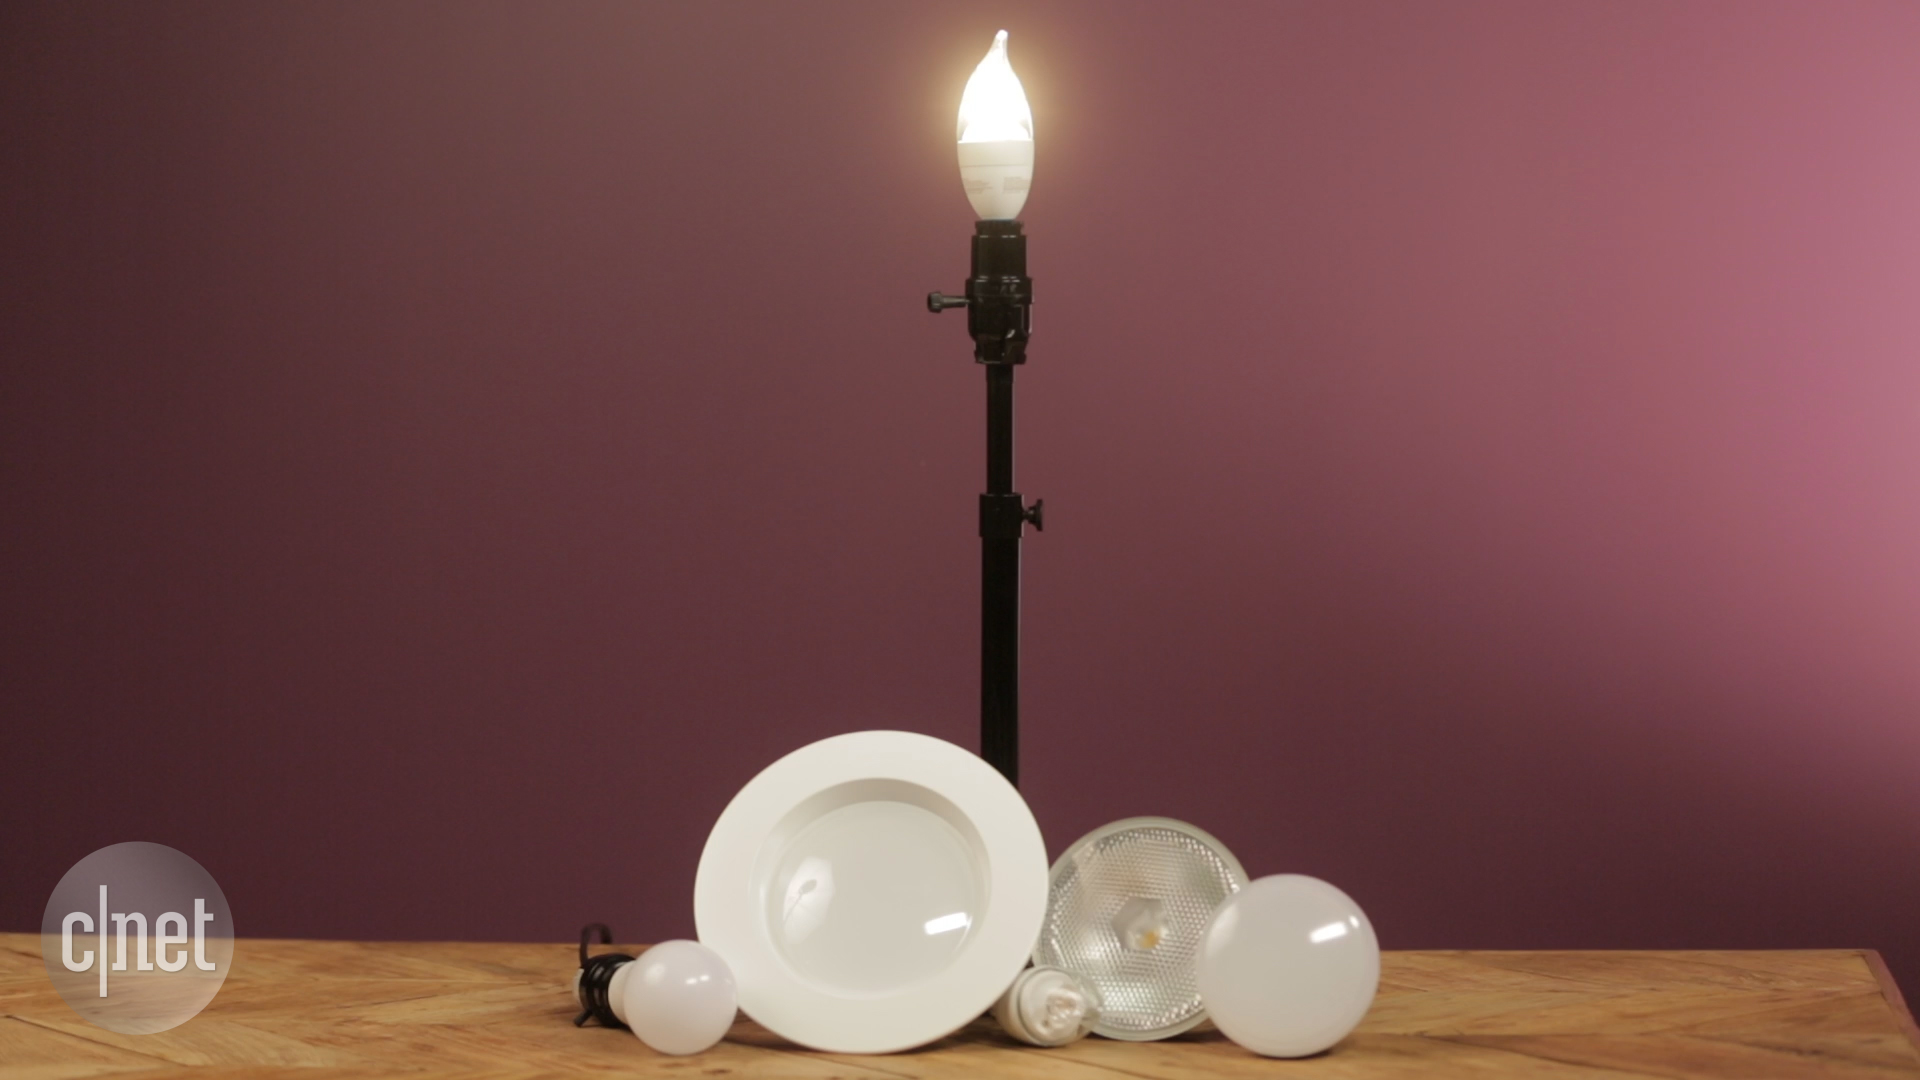 Video: Simple smart lighting from Feit's HomeBrite LEDs